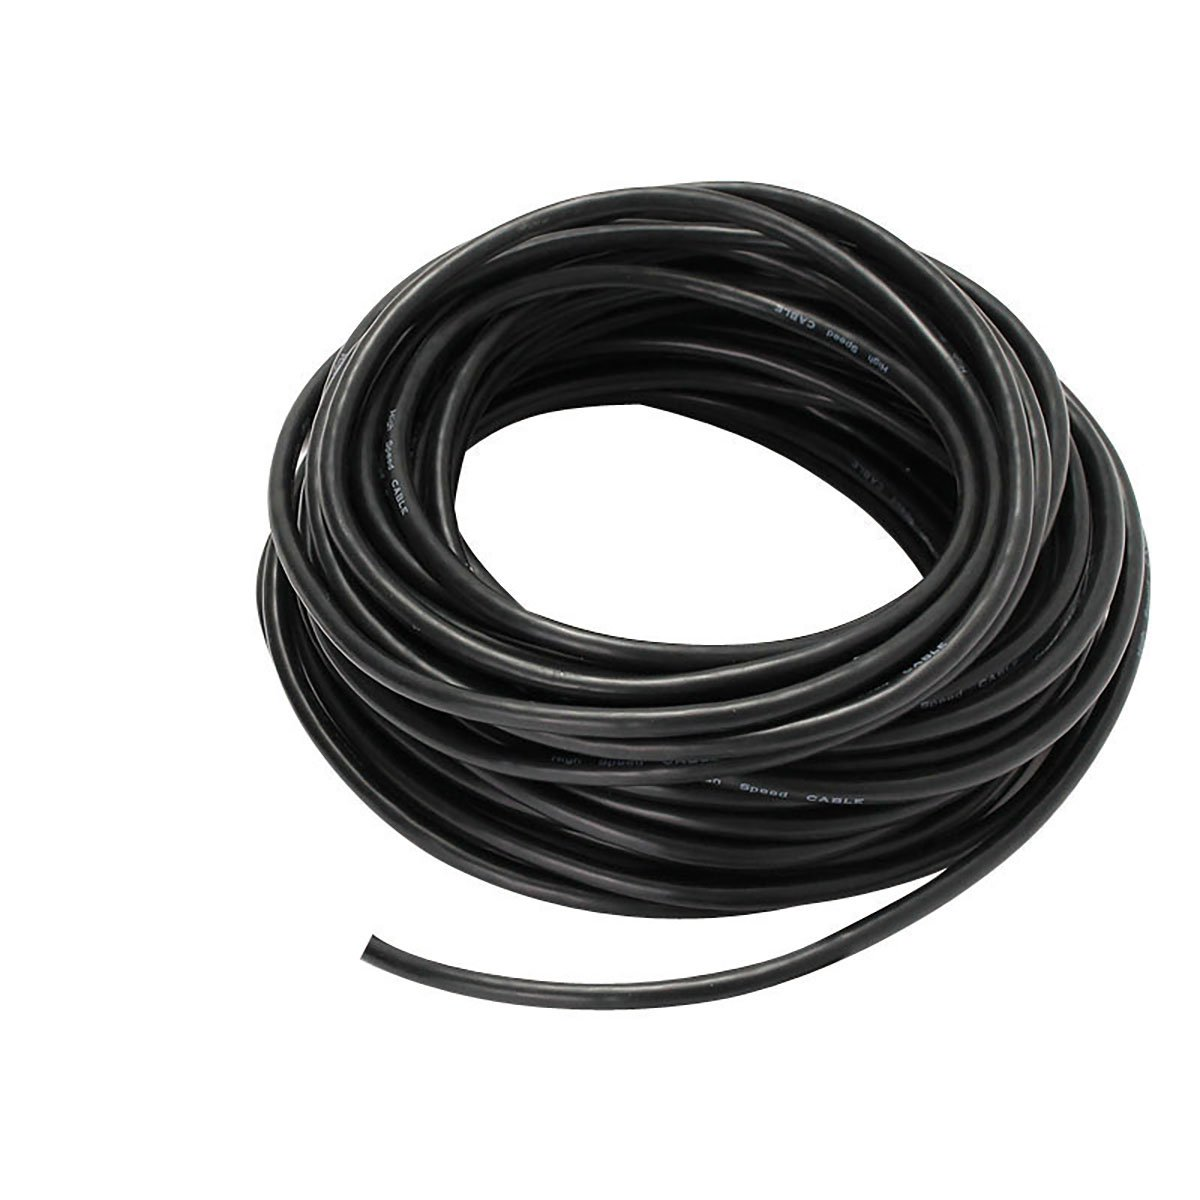 Eurofase Power Cord, Landscape, 12 Gauge, 250' by Eurofase